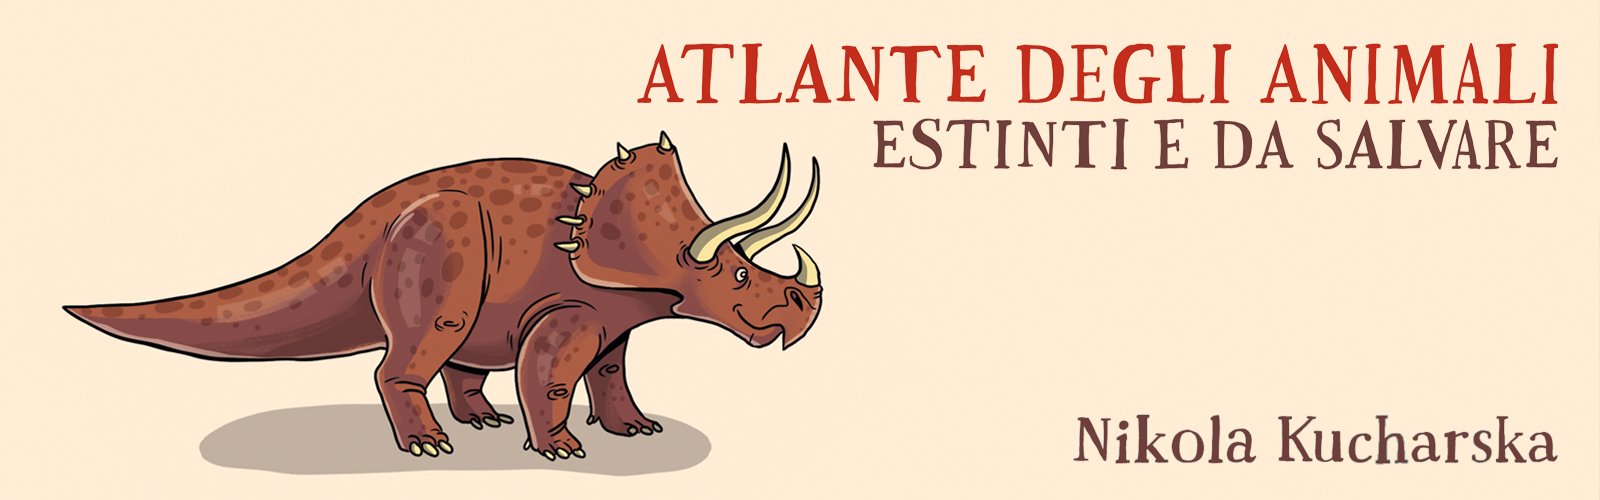 slider-atlante-animali-estinti